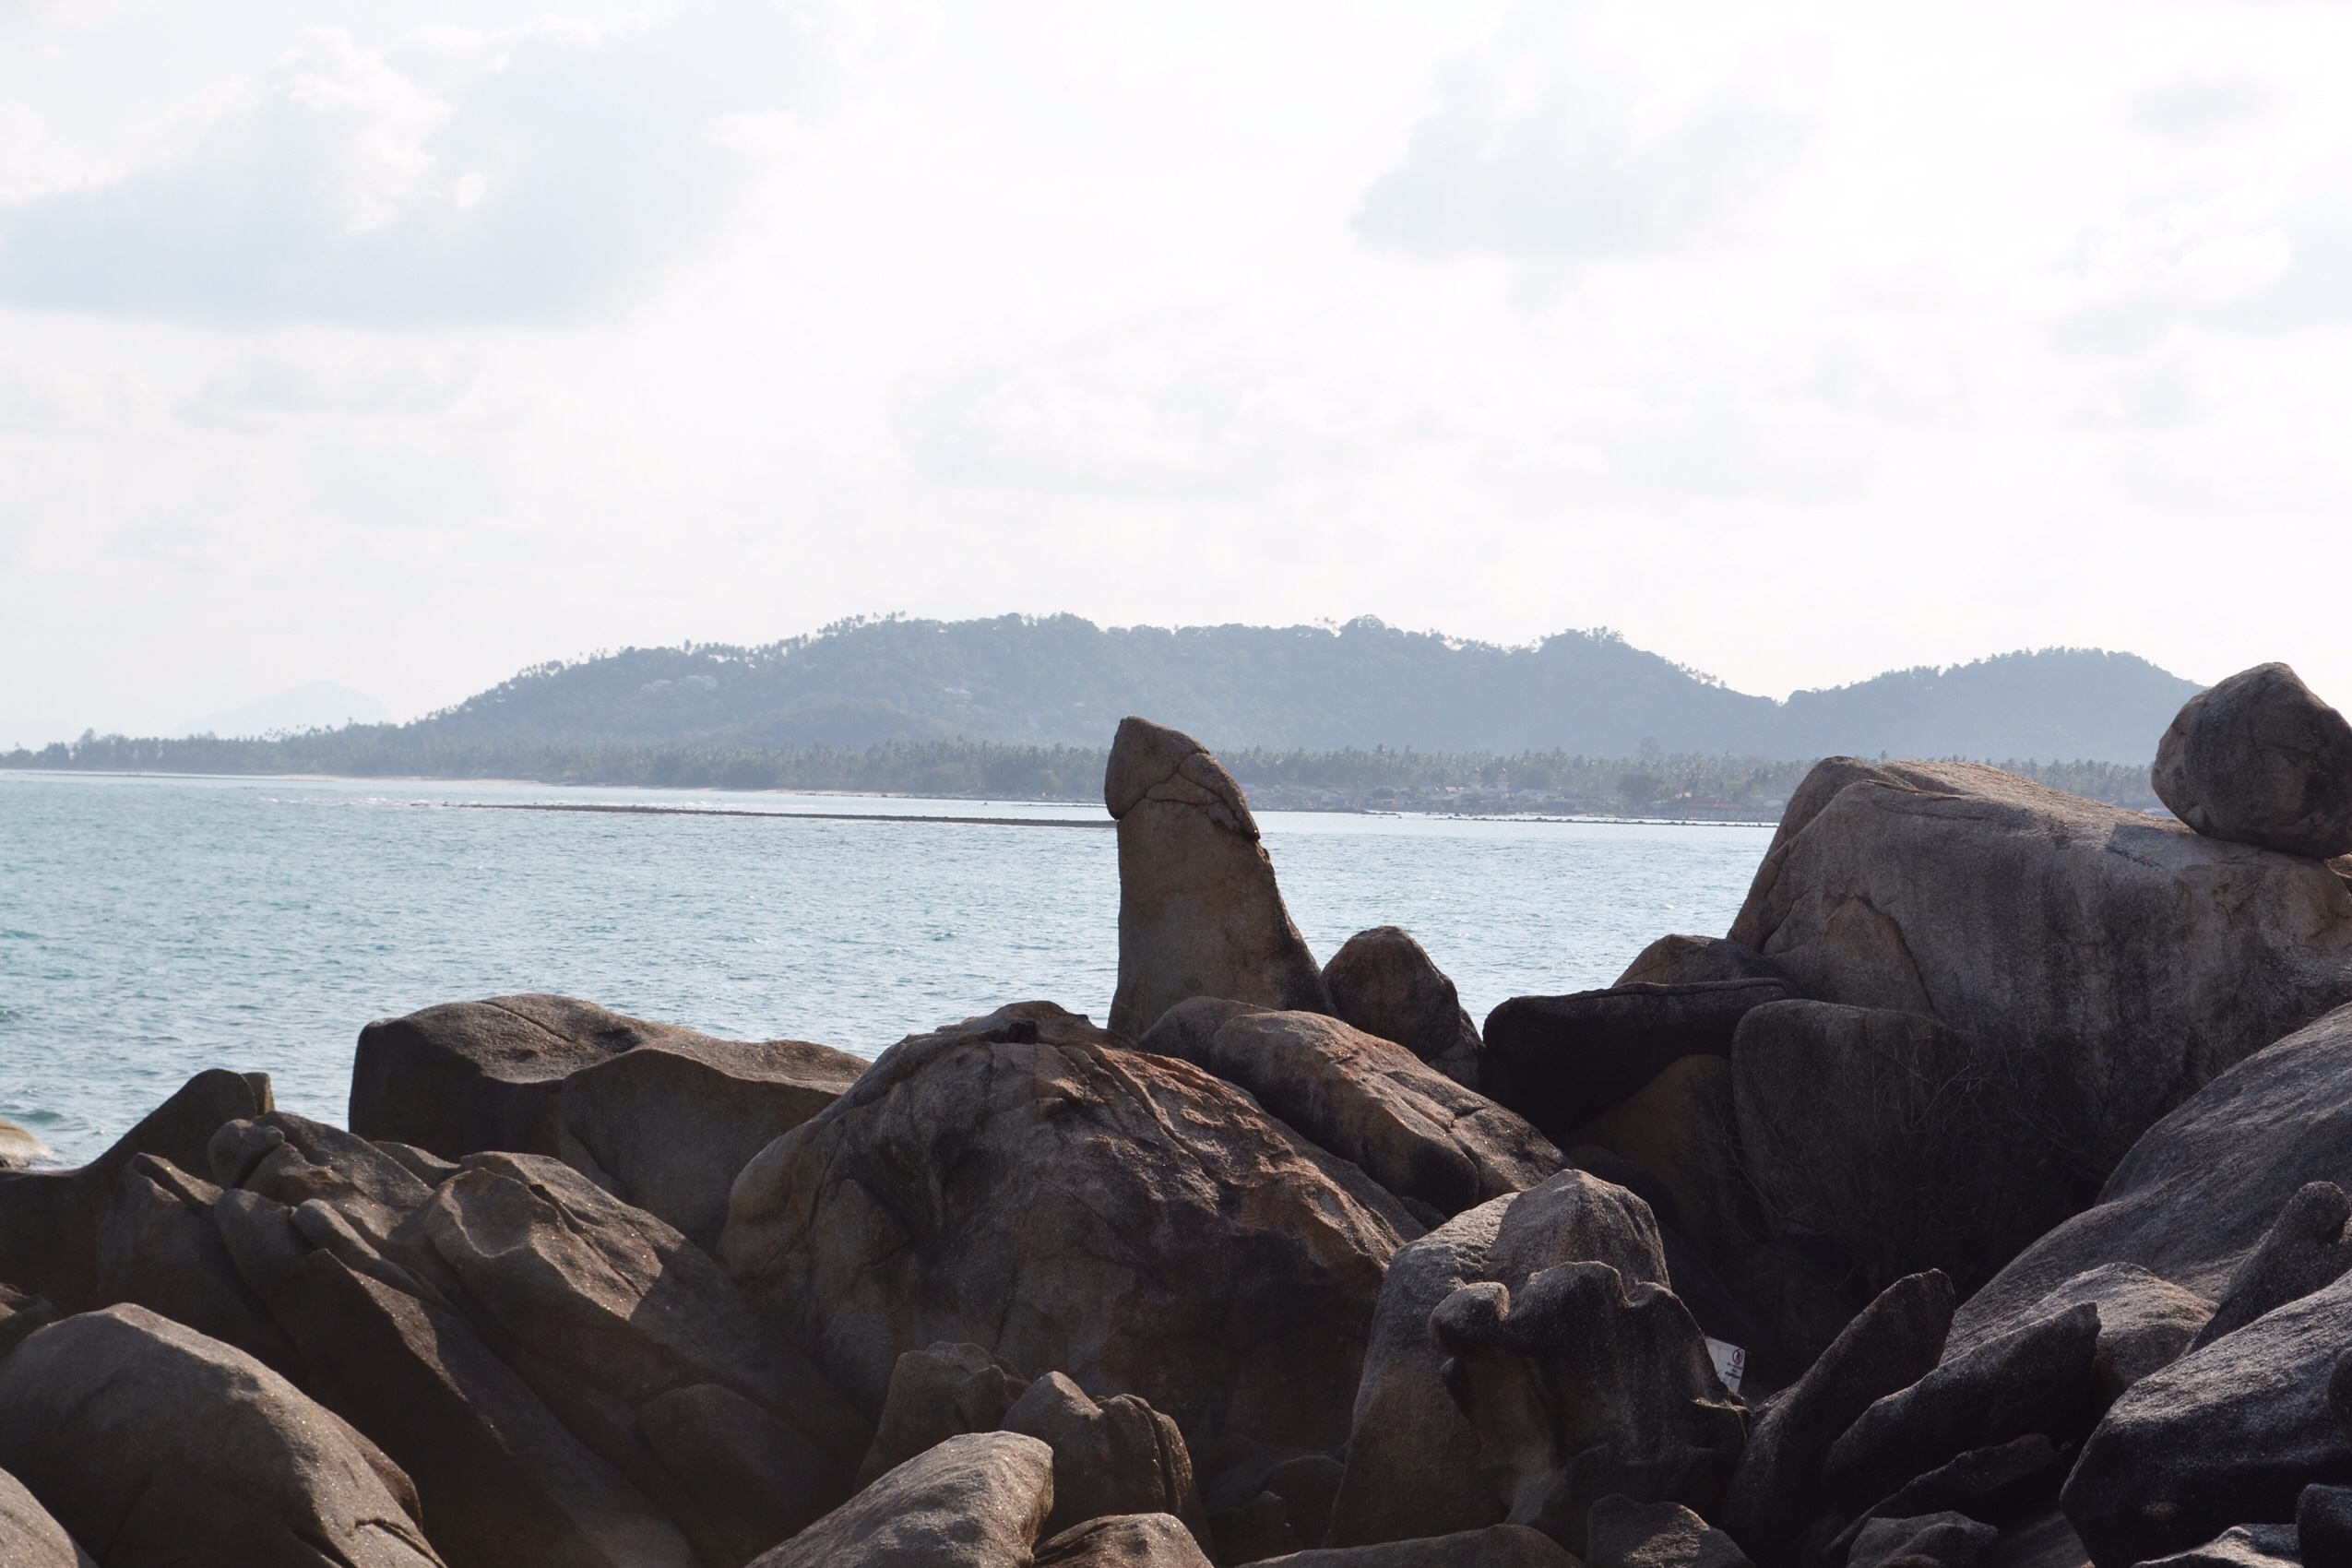 Image of Grandfather Rock in Koh Samui in Thailand